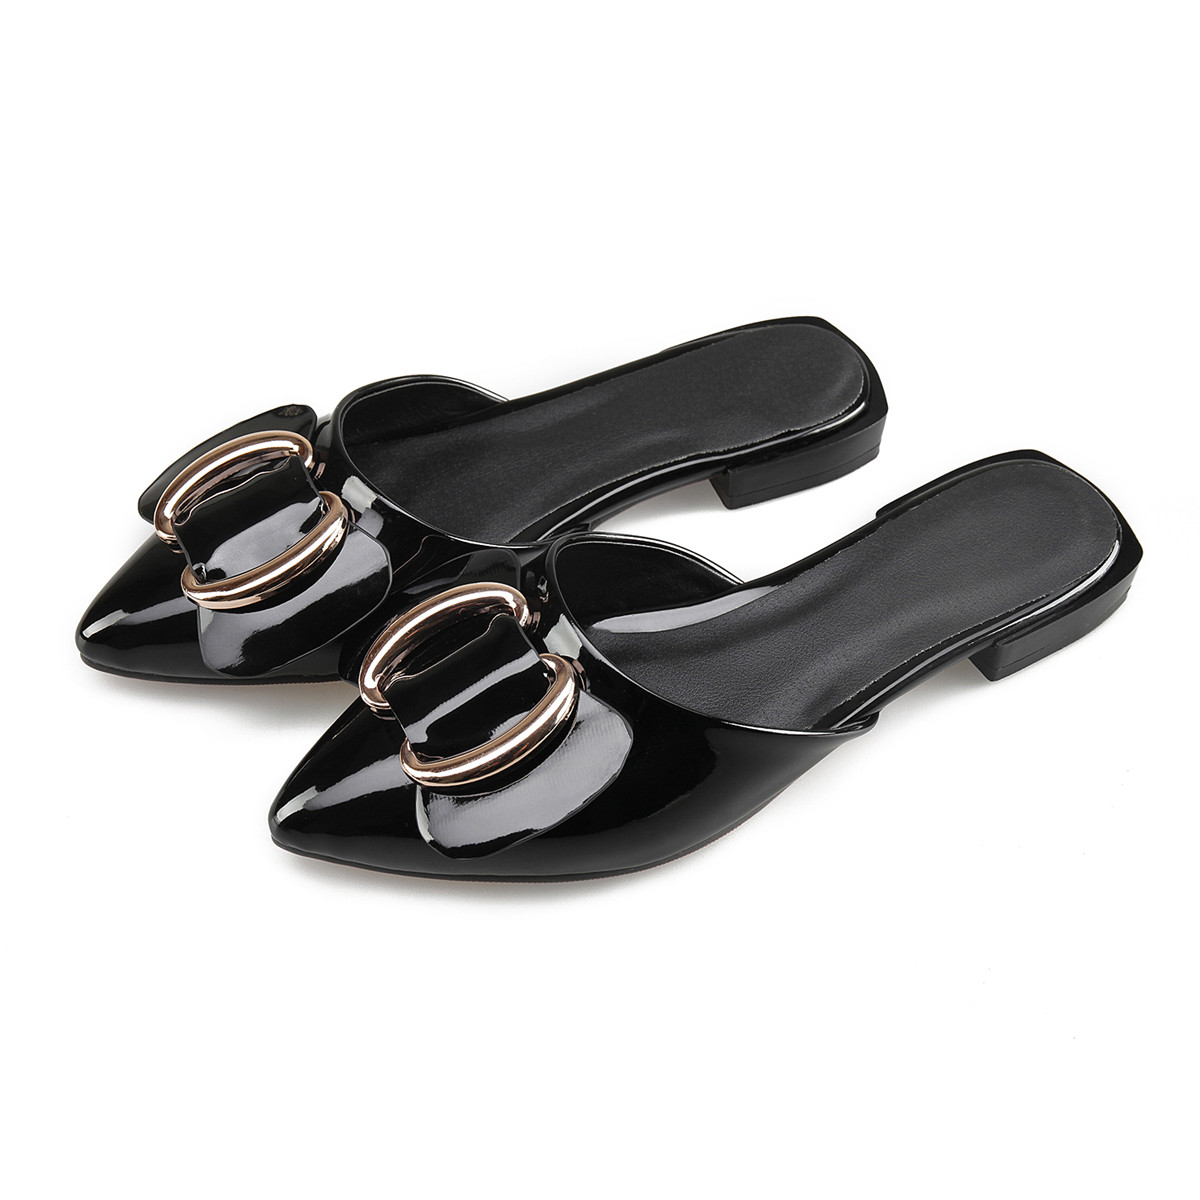 Summer Women Slingback Flats Pointed Toe Bowtie Flat Shoes ...